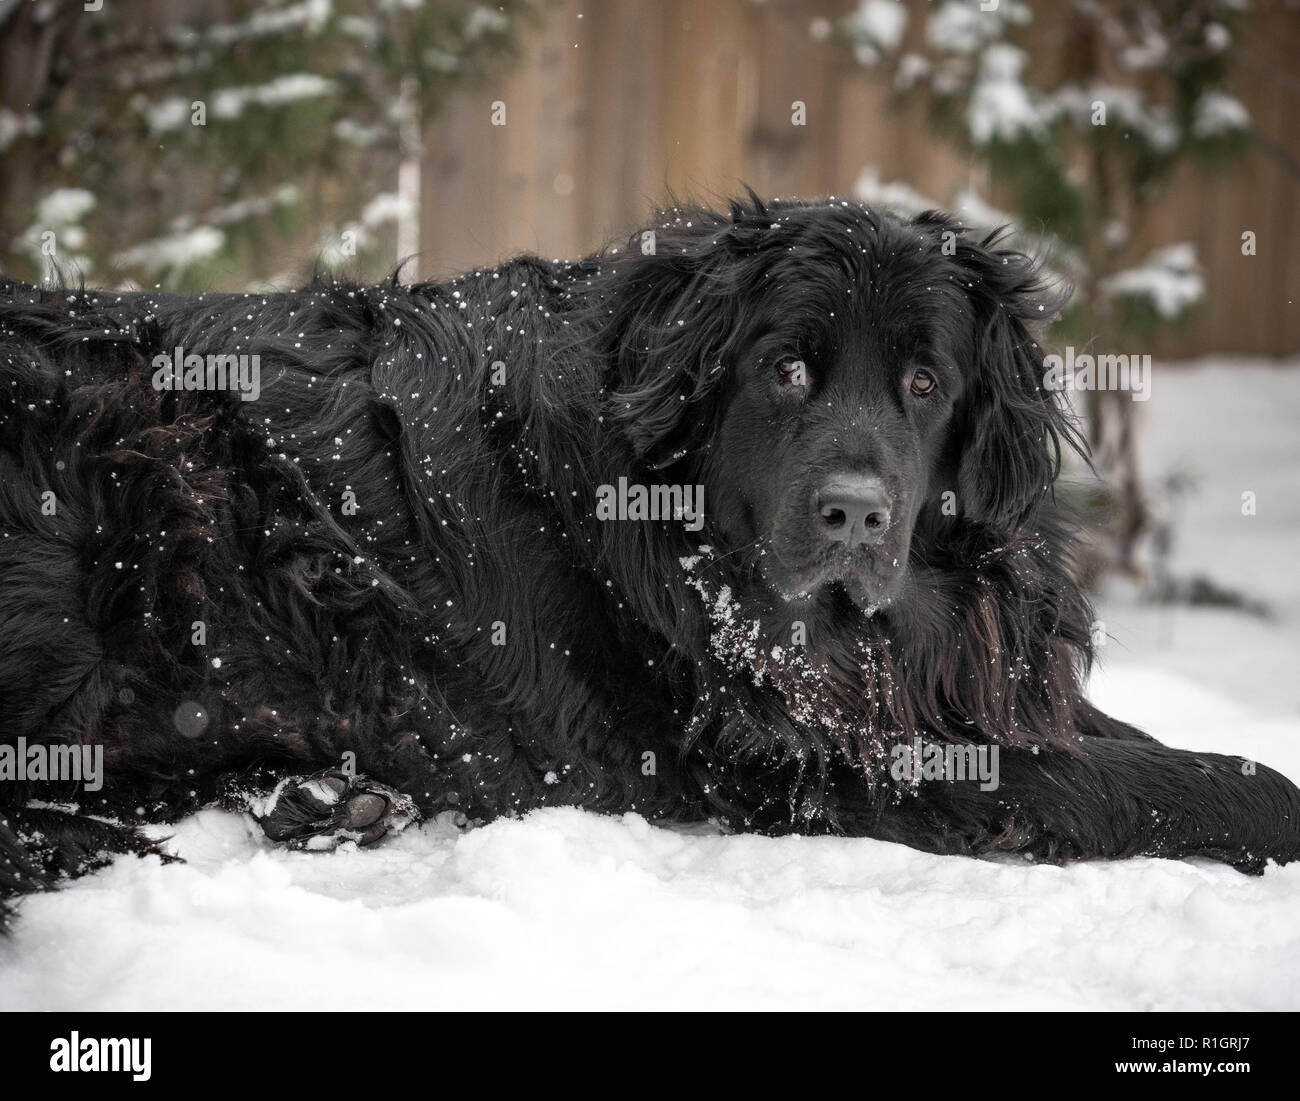 Giant black newfoundland dog laying in snowy landscape with trees and fence behind. - Stock Image